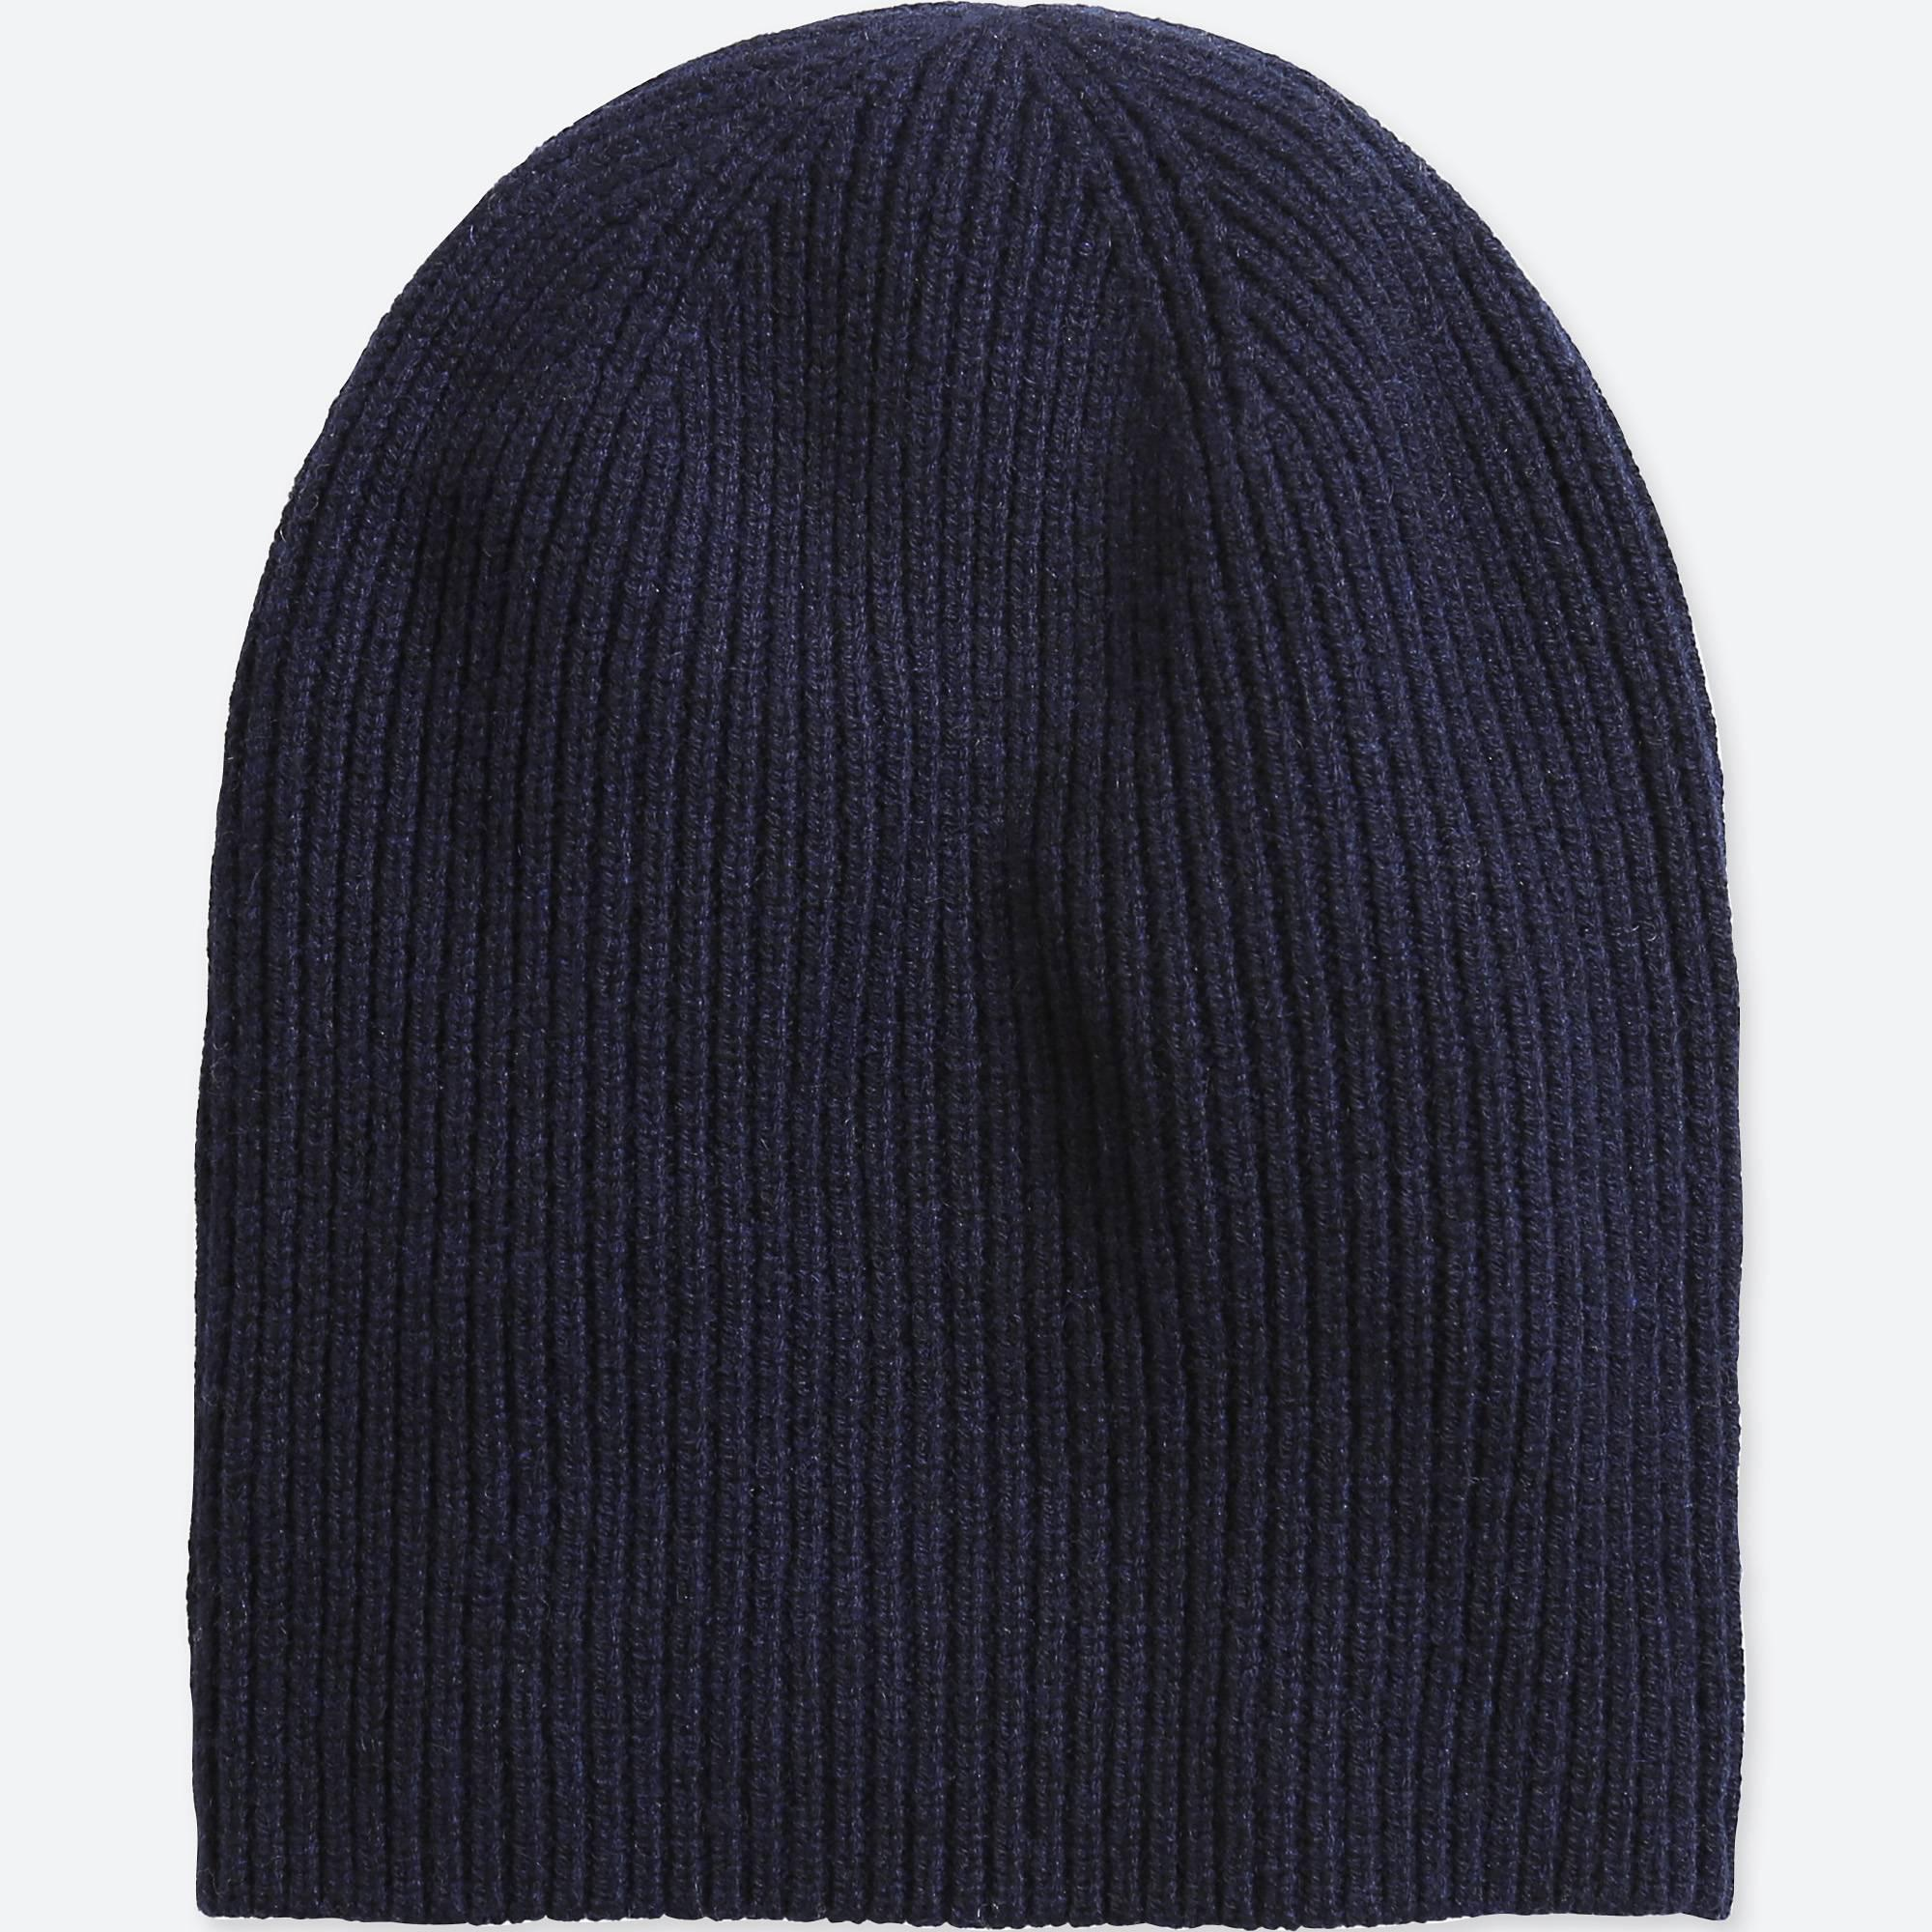 581f33d5f0118 Lyst - Uniqlo Cashmere Knitted Beanie in Blue